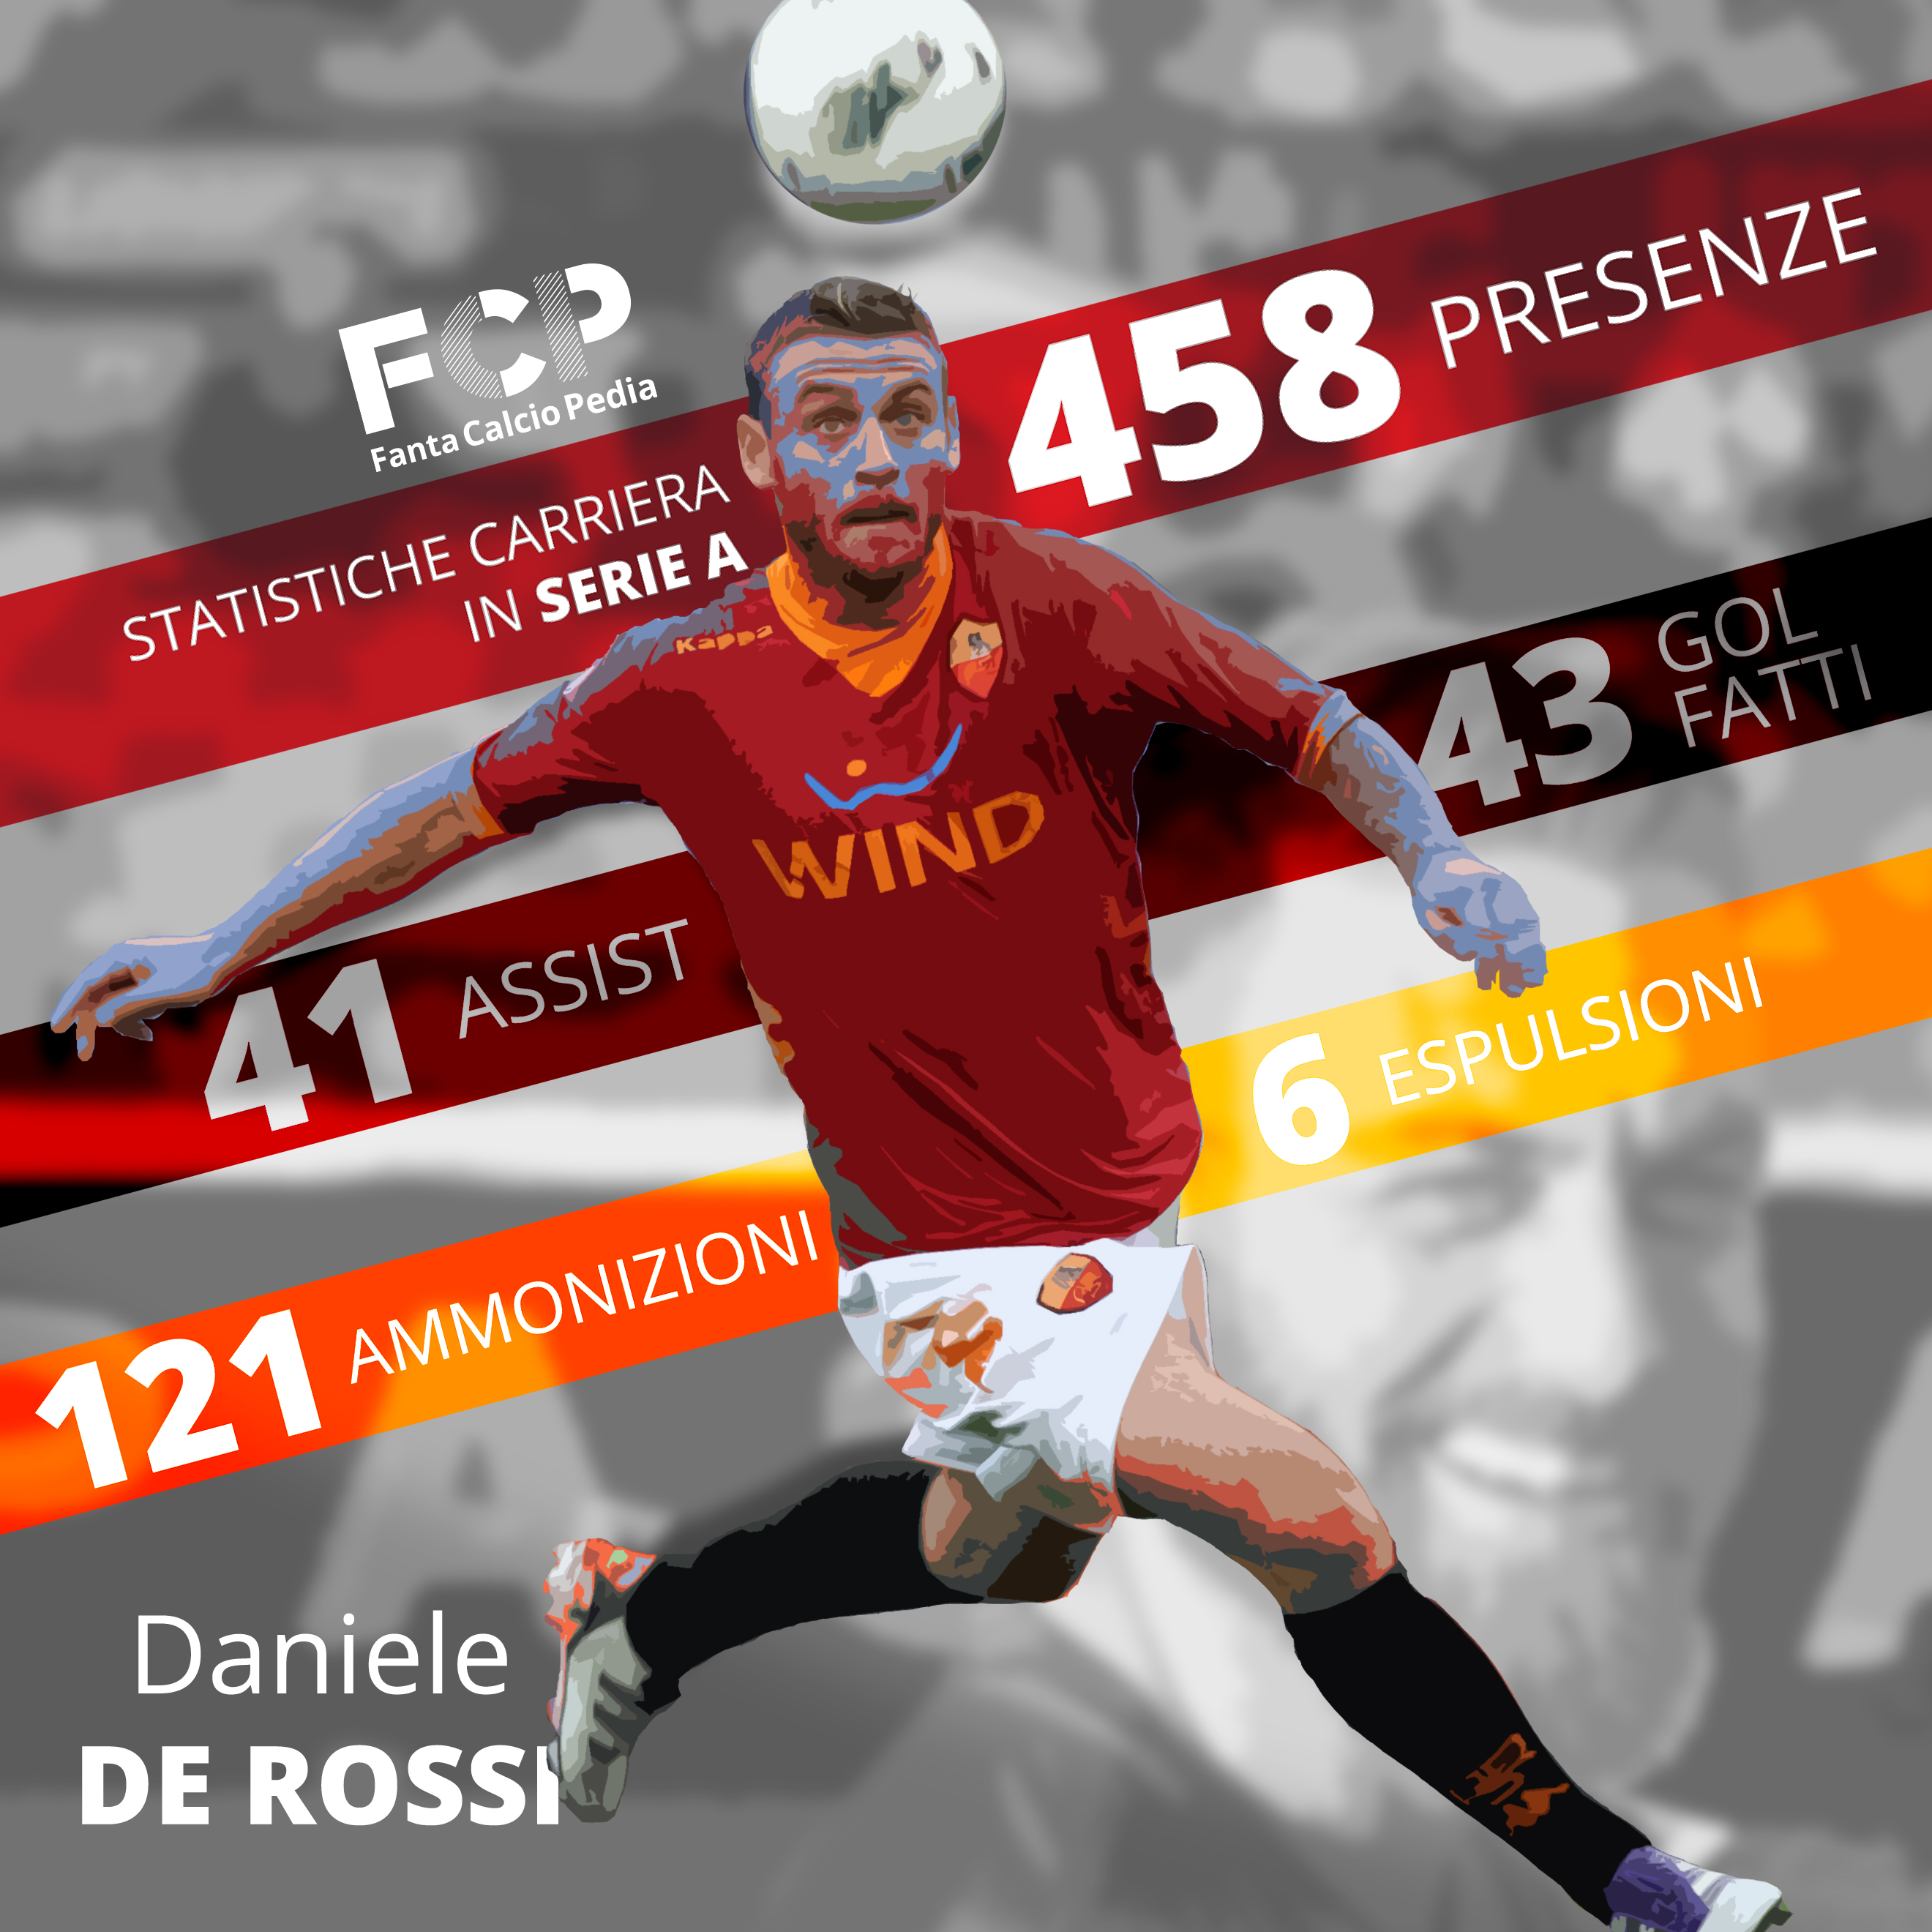 statistiche de rossi in carriera